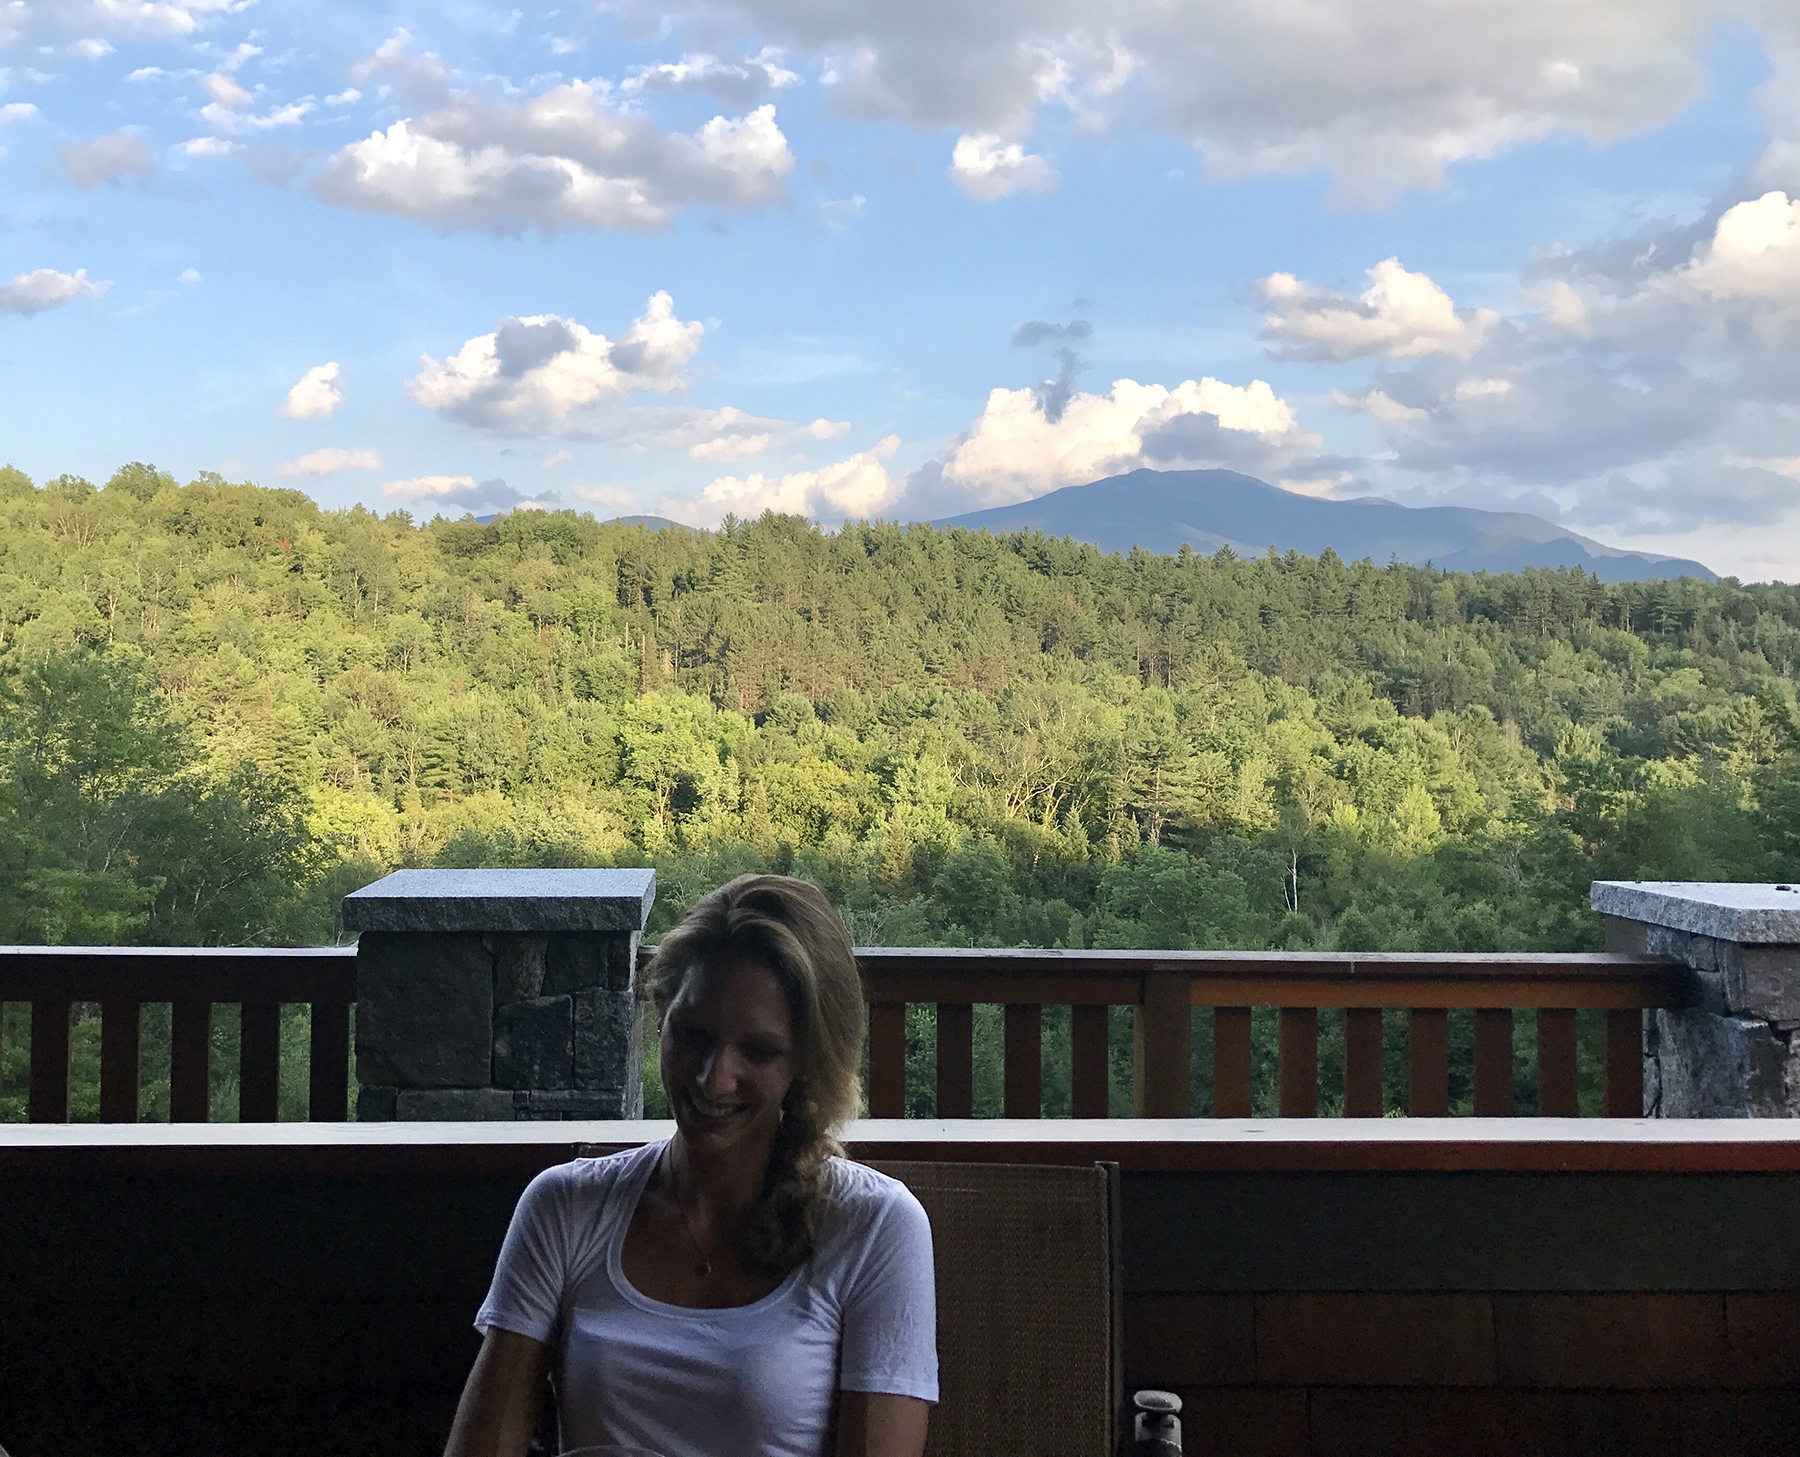 My wife Emily, on the collector's deck, overlooking the mountains.